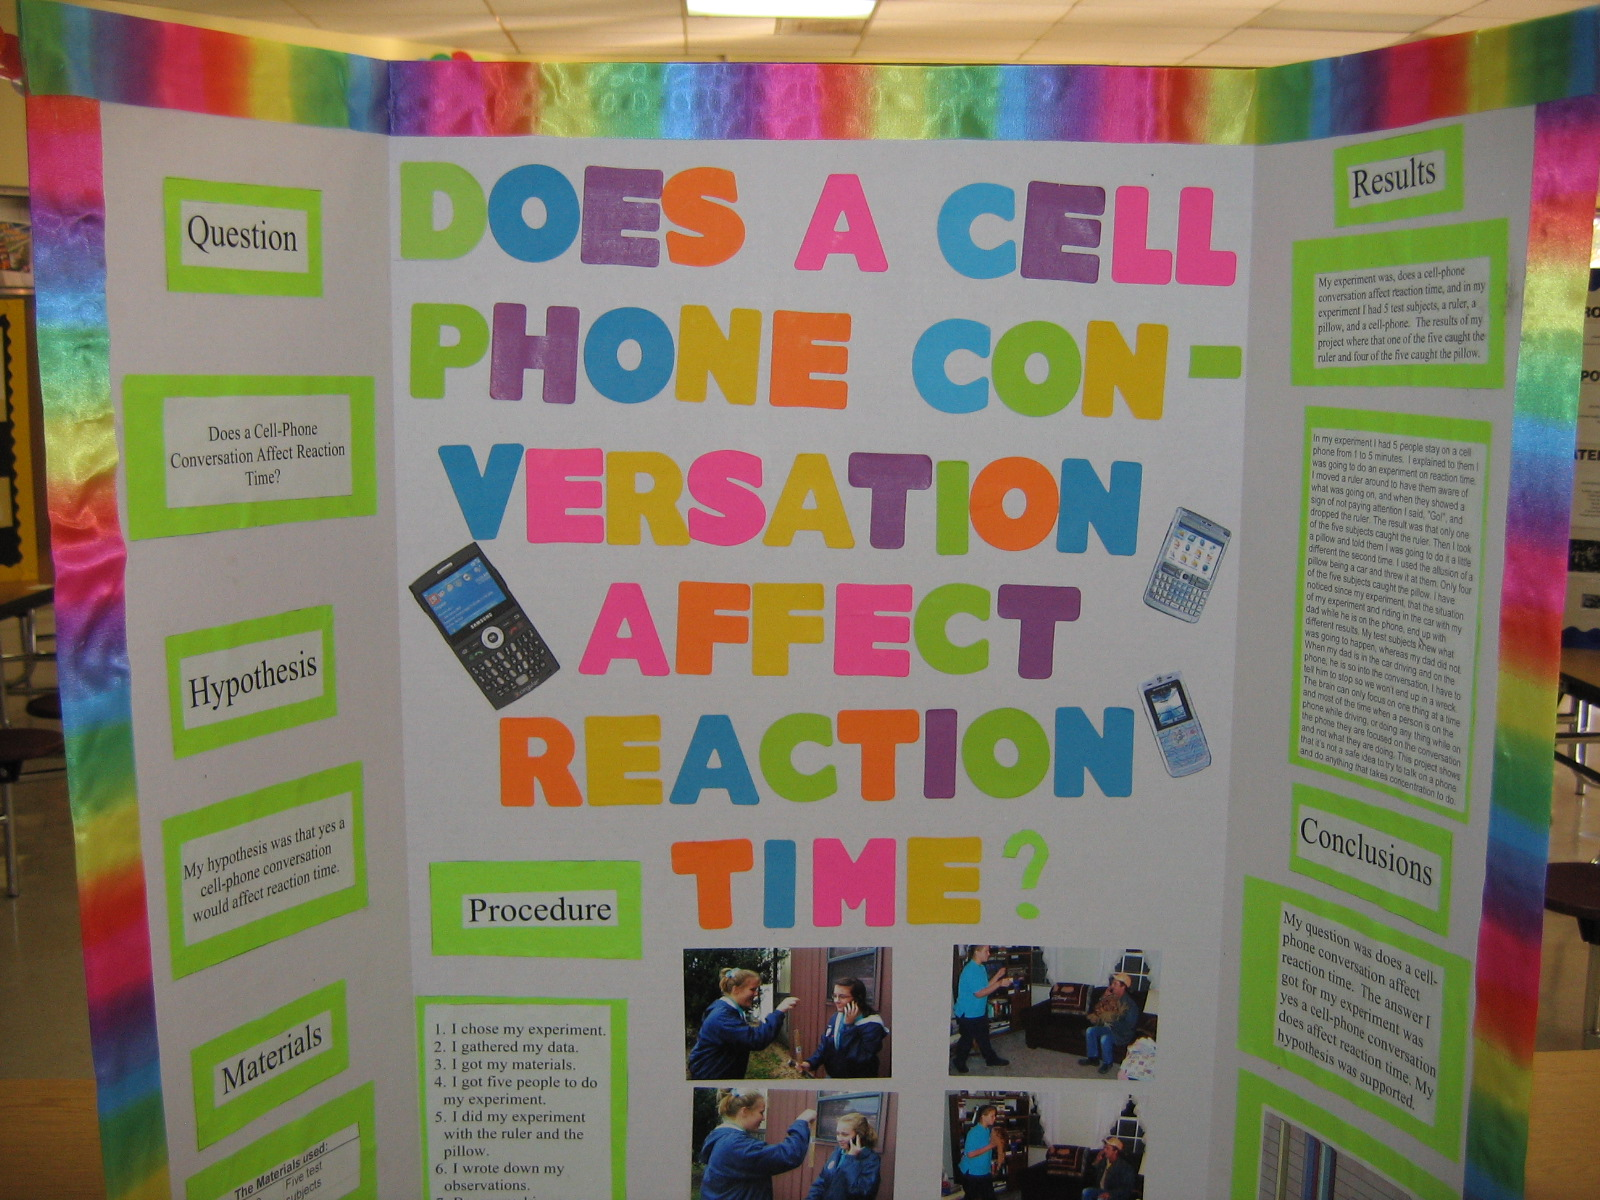 Does a cell phone conversation affect reaction time?